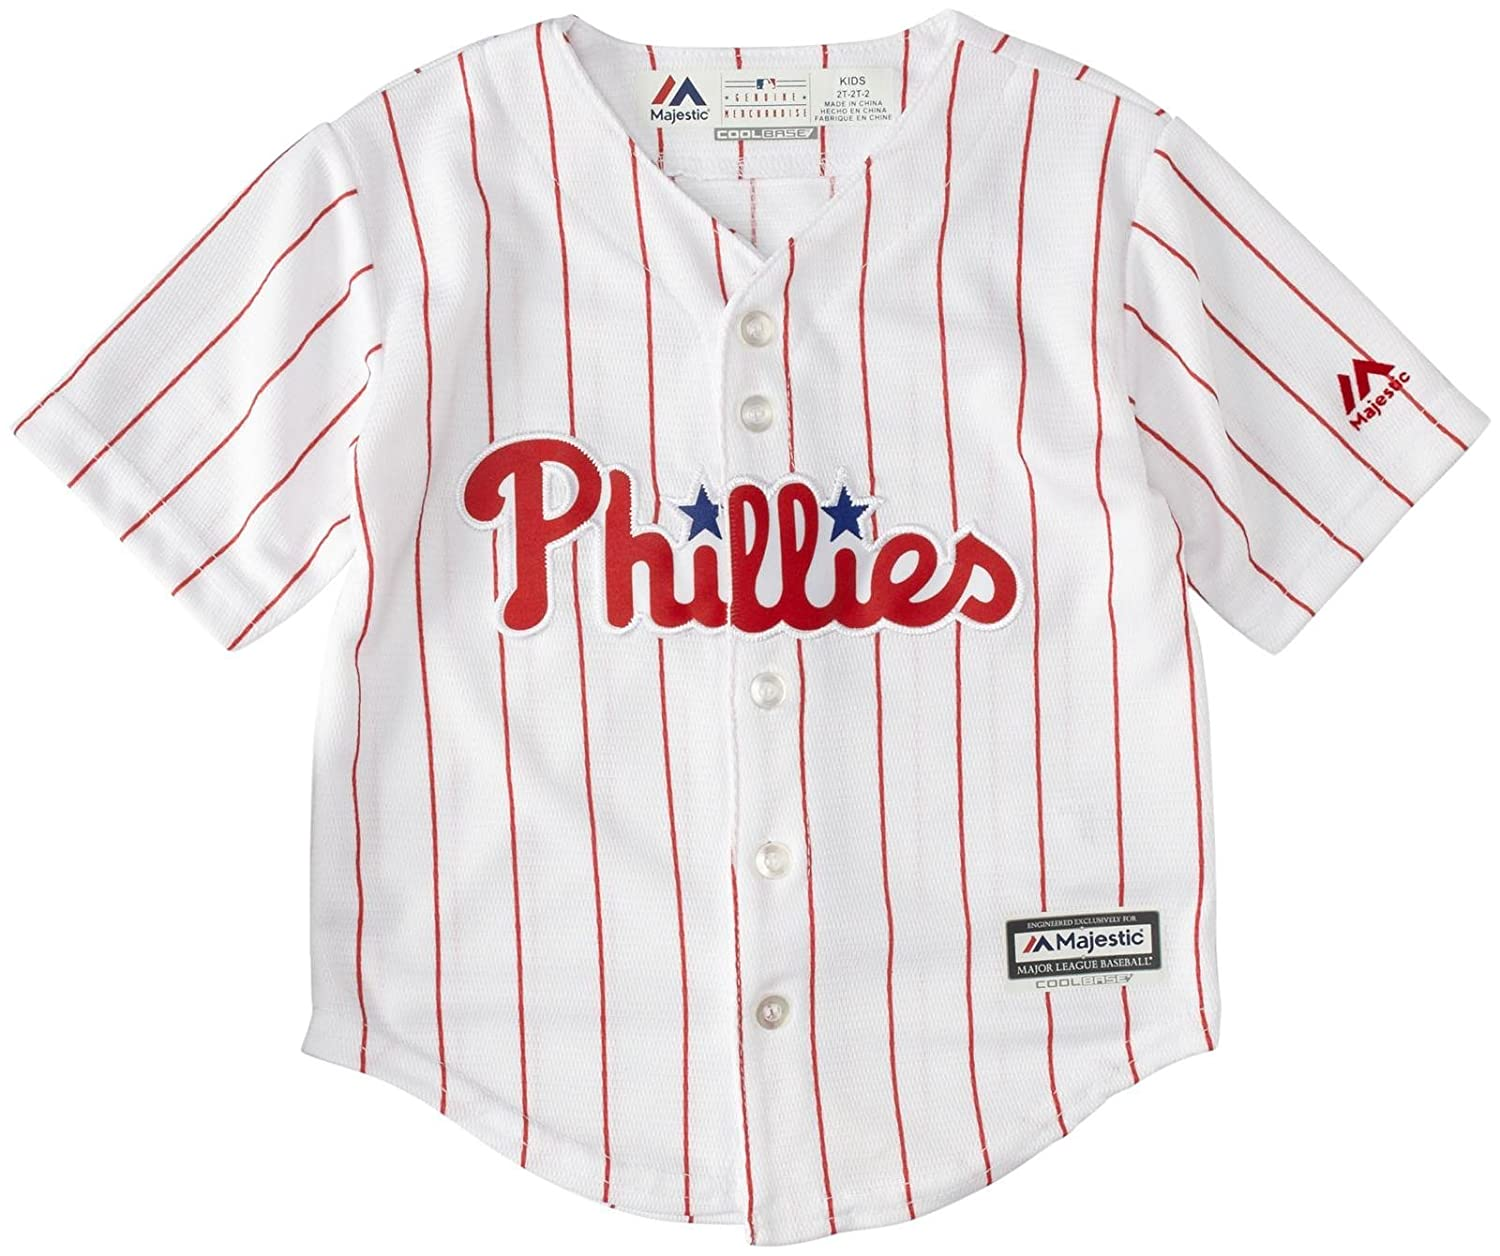 new concept 8aa25 6418b Amazon.com : Majestic Toddler Home Replica Jersey ...